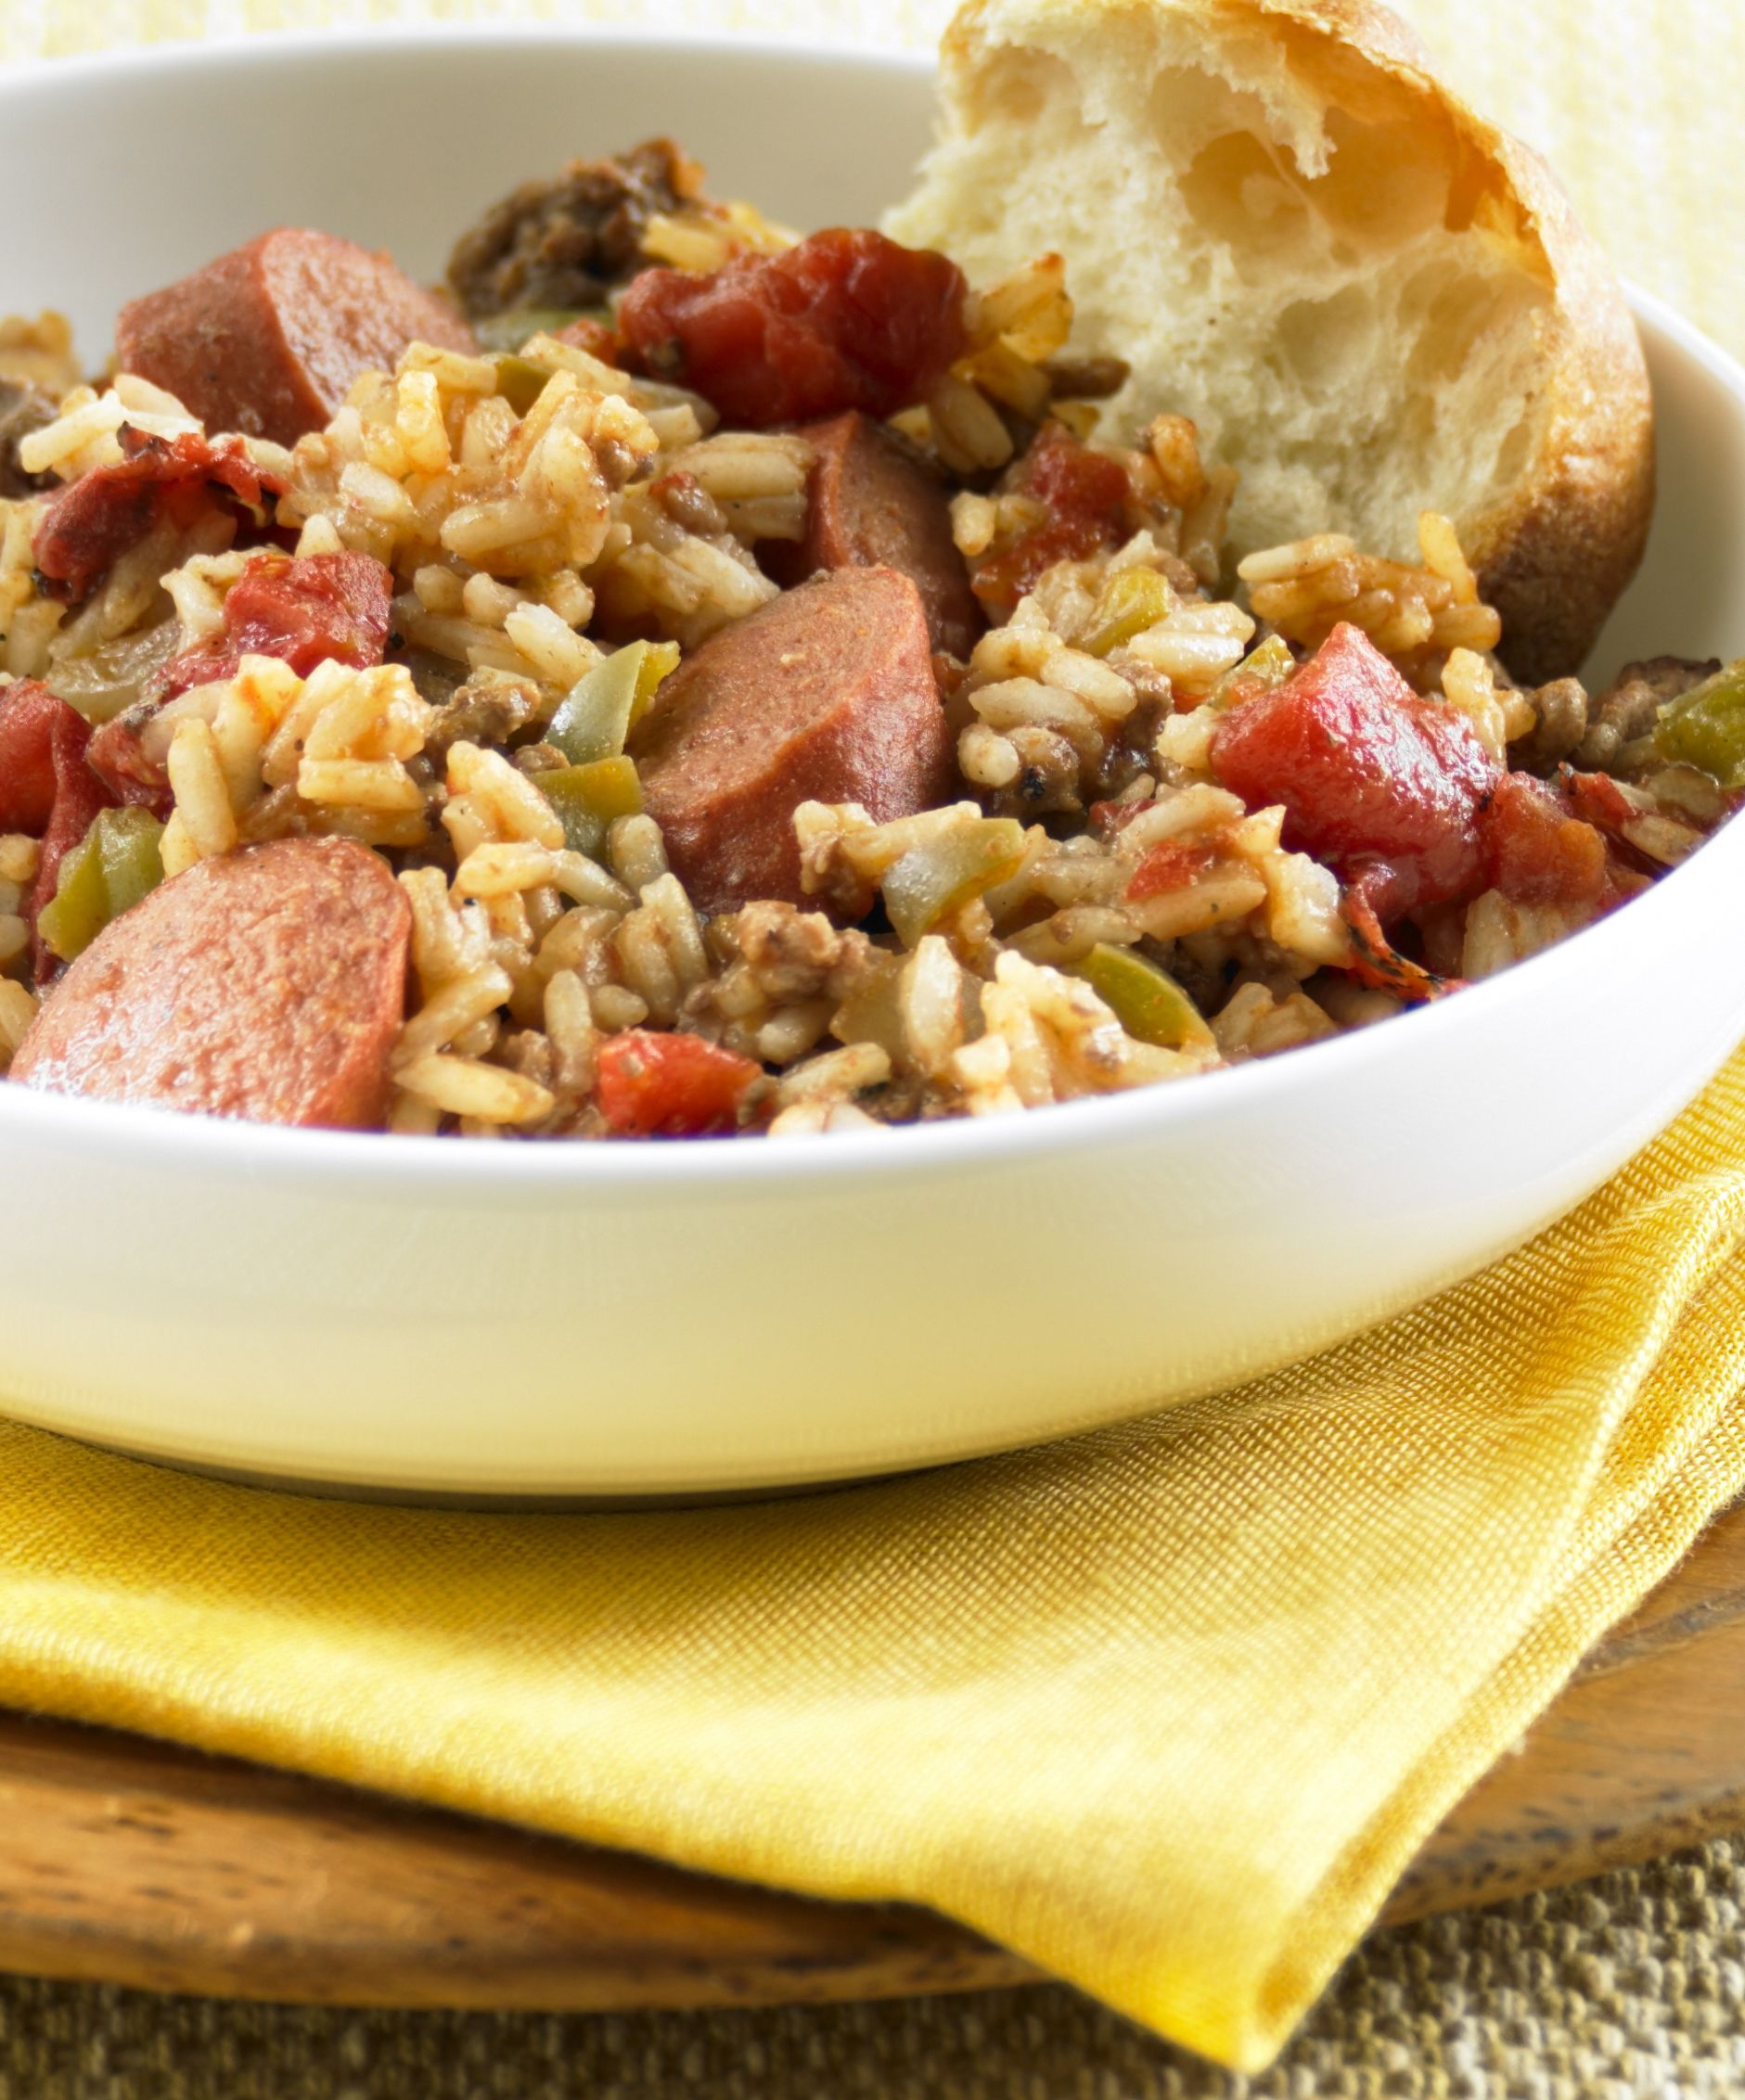 With only 15 minutes of prep, this easy Smoky Beef and Rice Skillet recipe is sure to become a weekday dinner recipe classic.